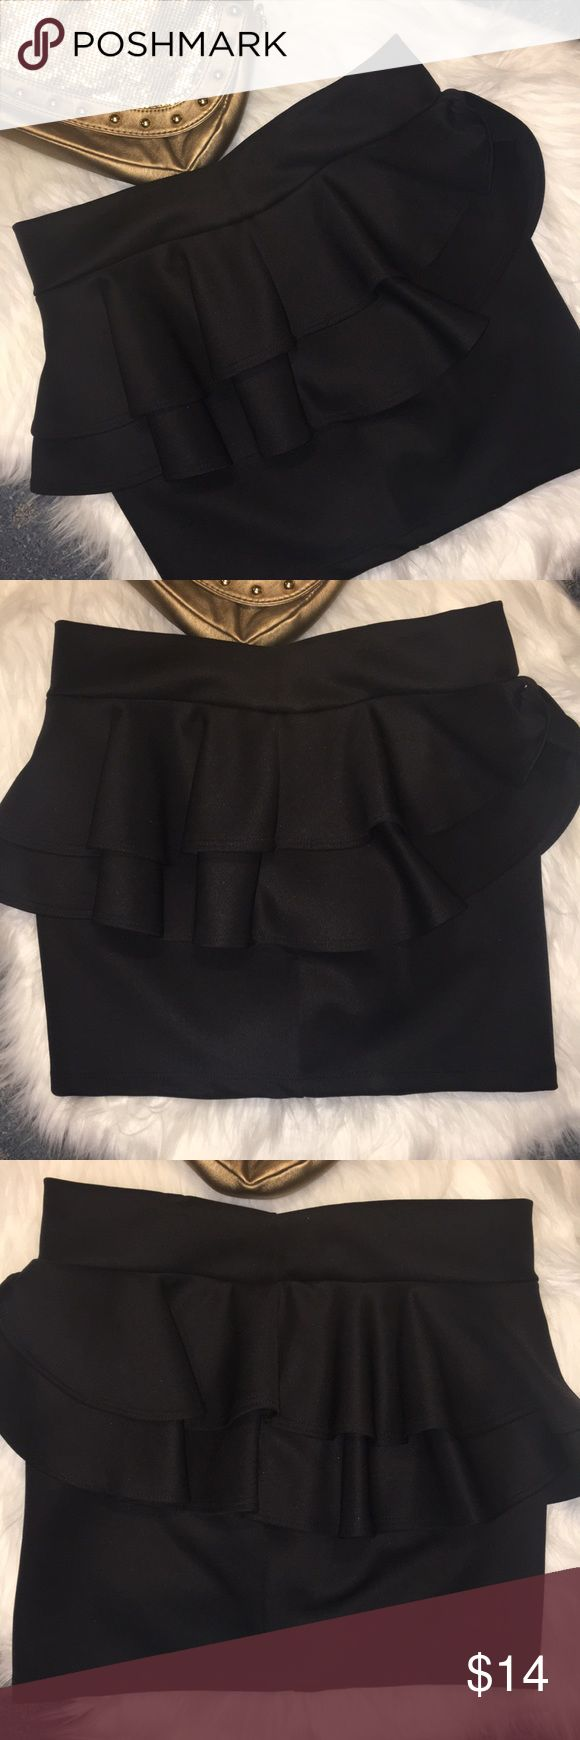 Sexy Medium Black Peplum Skirt Brand new black Peplum skirt. Perfect with some cute designed tights and a crop top shirt! Size us medium and fits true to size. Dress does have stretch to it. Skirts Mini